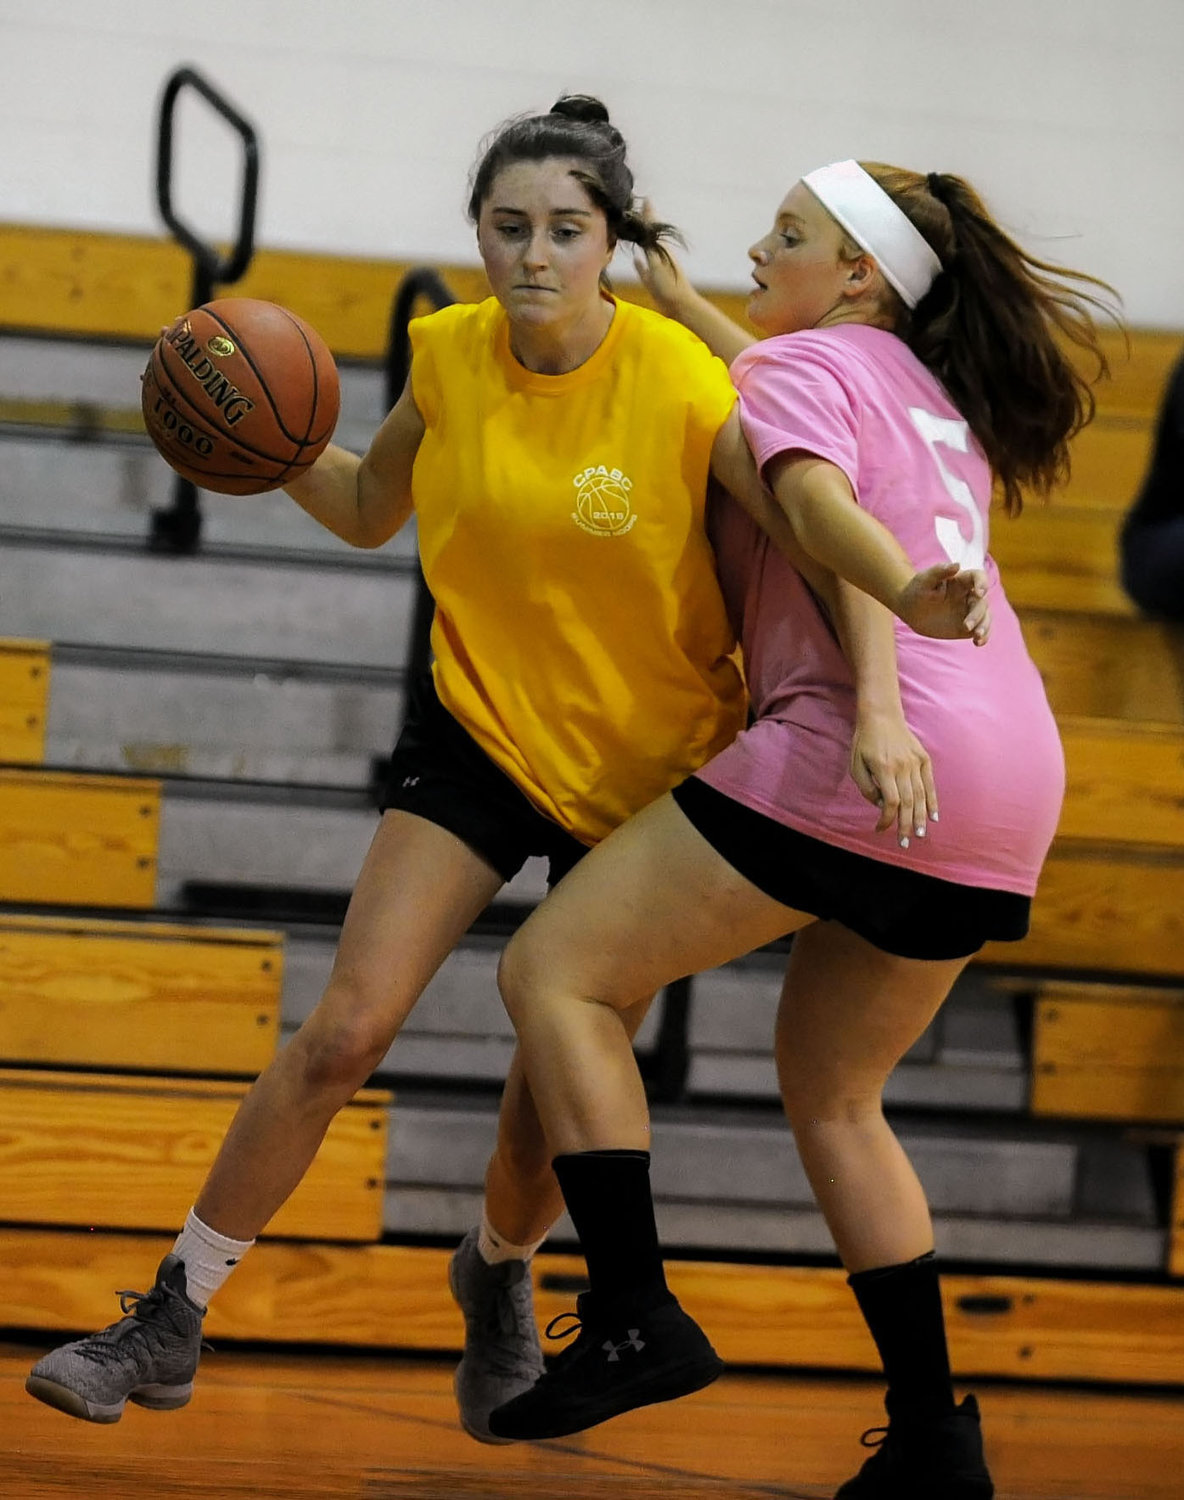 Seaford's Jamie McSorley, left, tried to work around Mepham's Dominique Delutri during a summer league game at Carle Place on July 25.